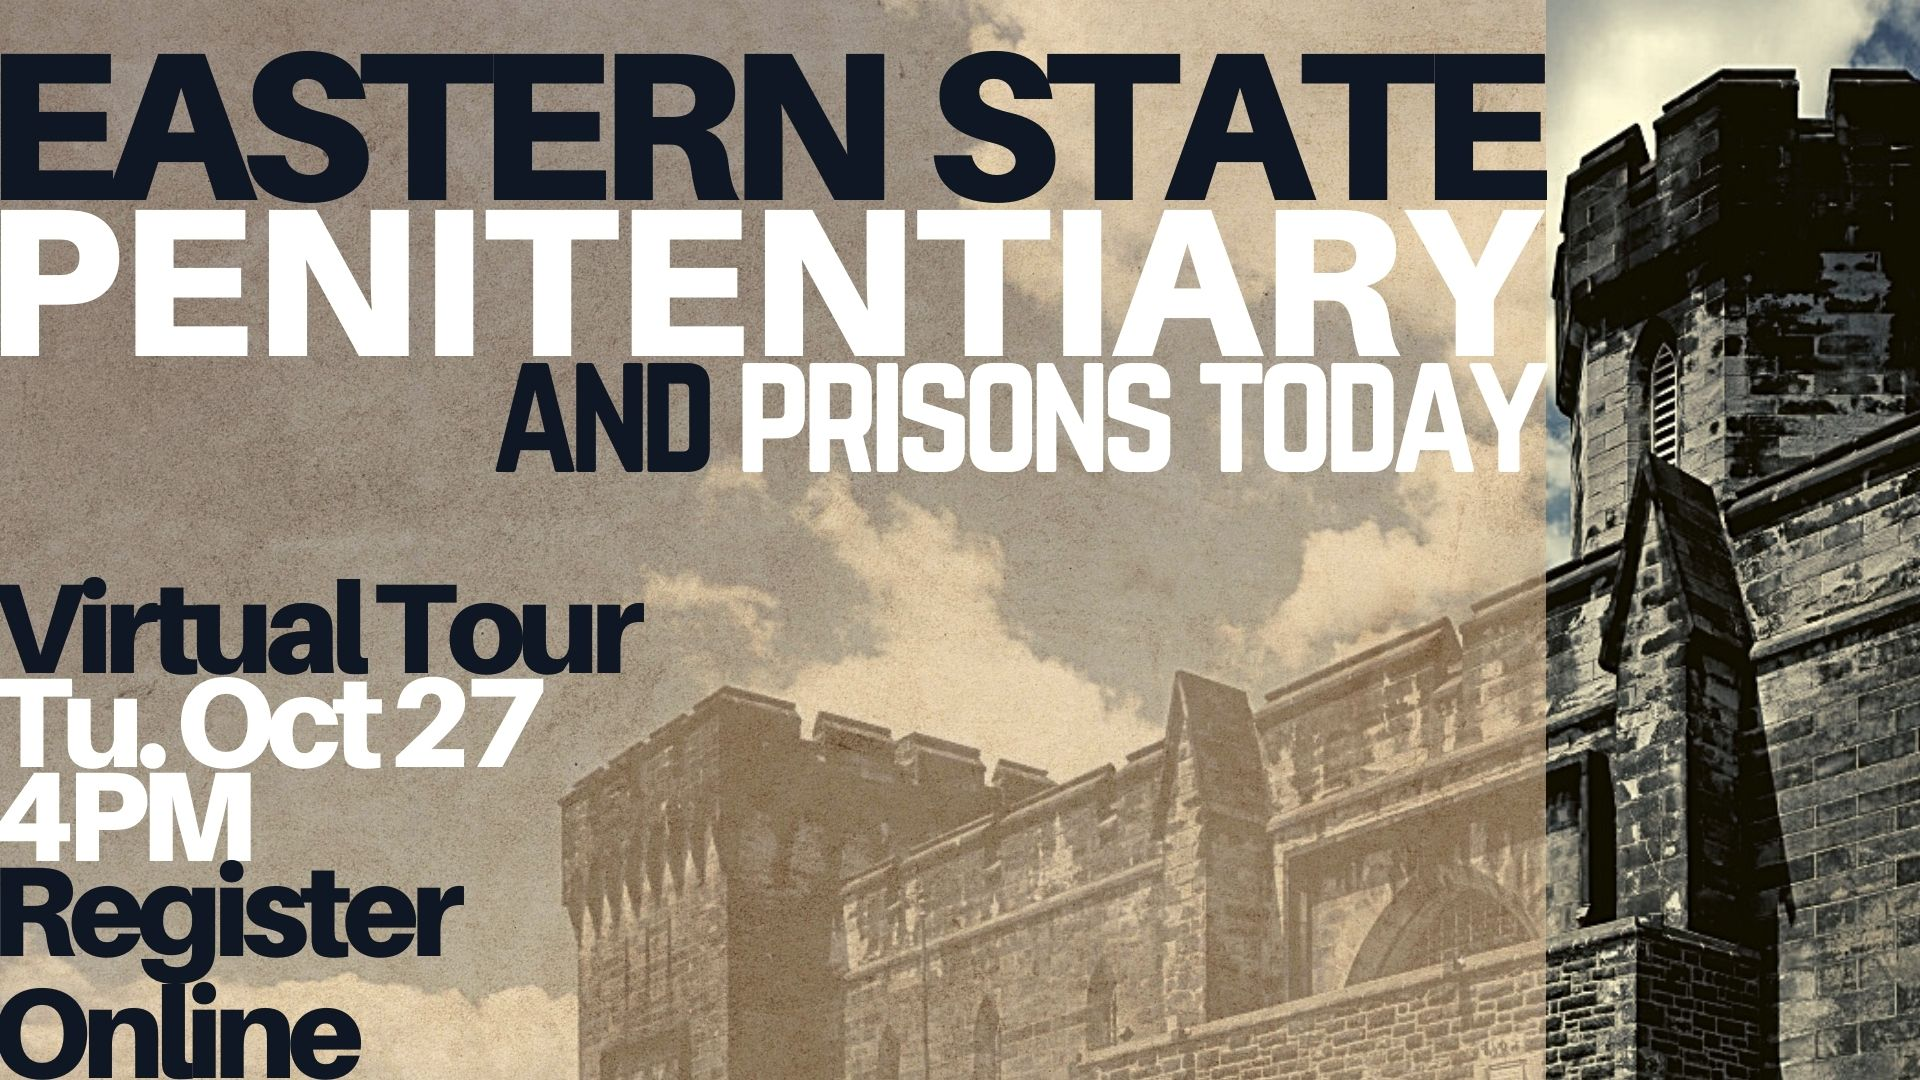 Eastern State Penitentiary and Prisons Today (Virtual Tour)